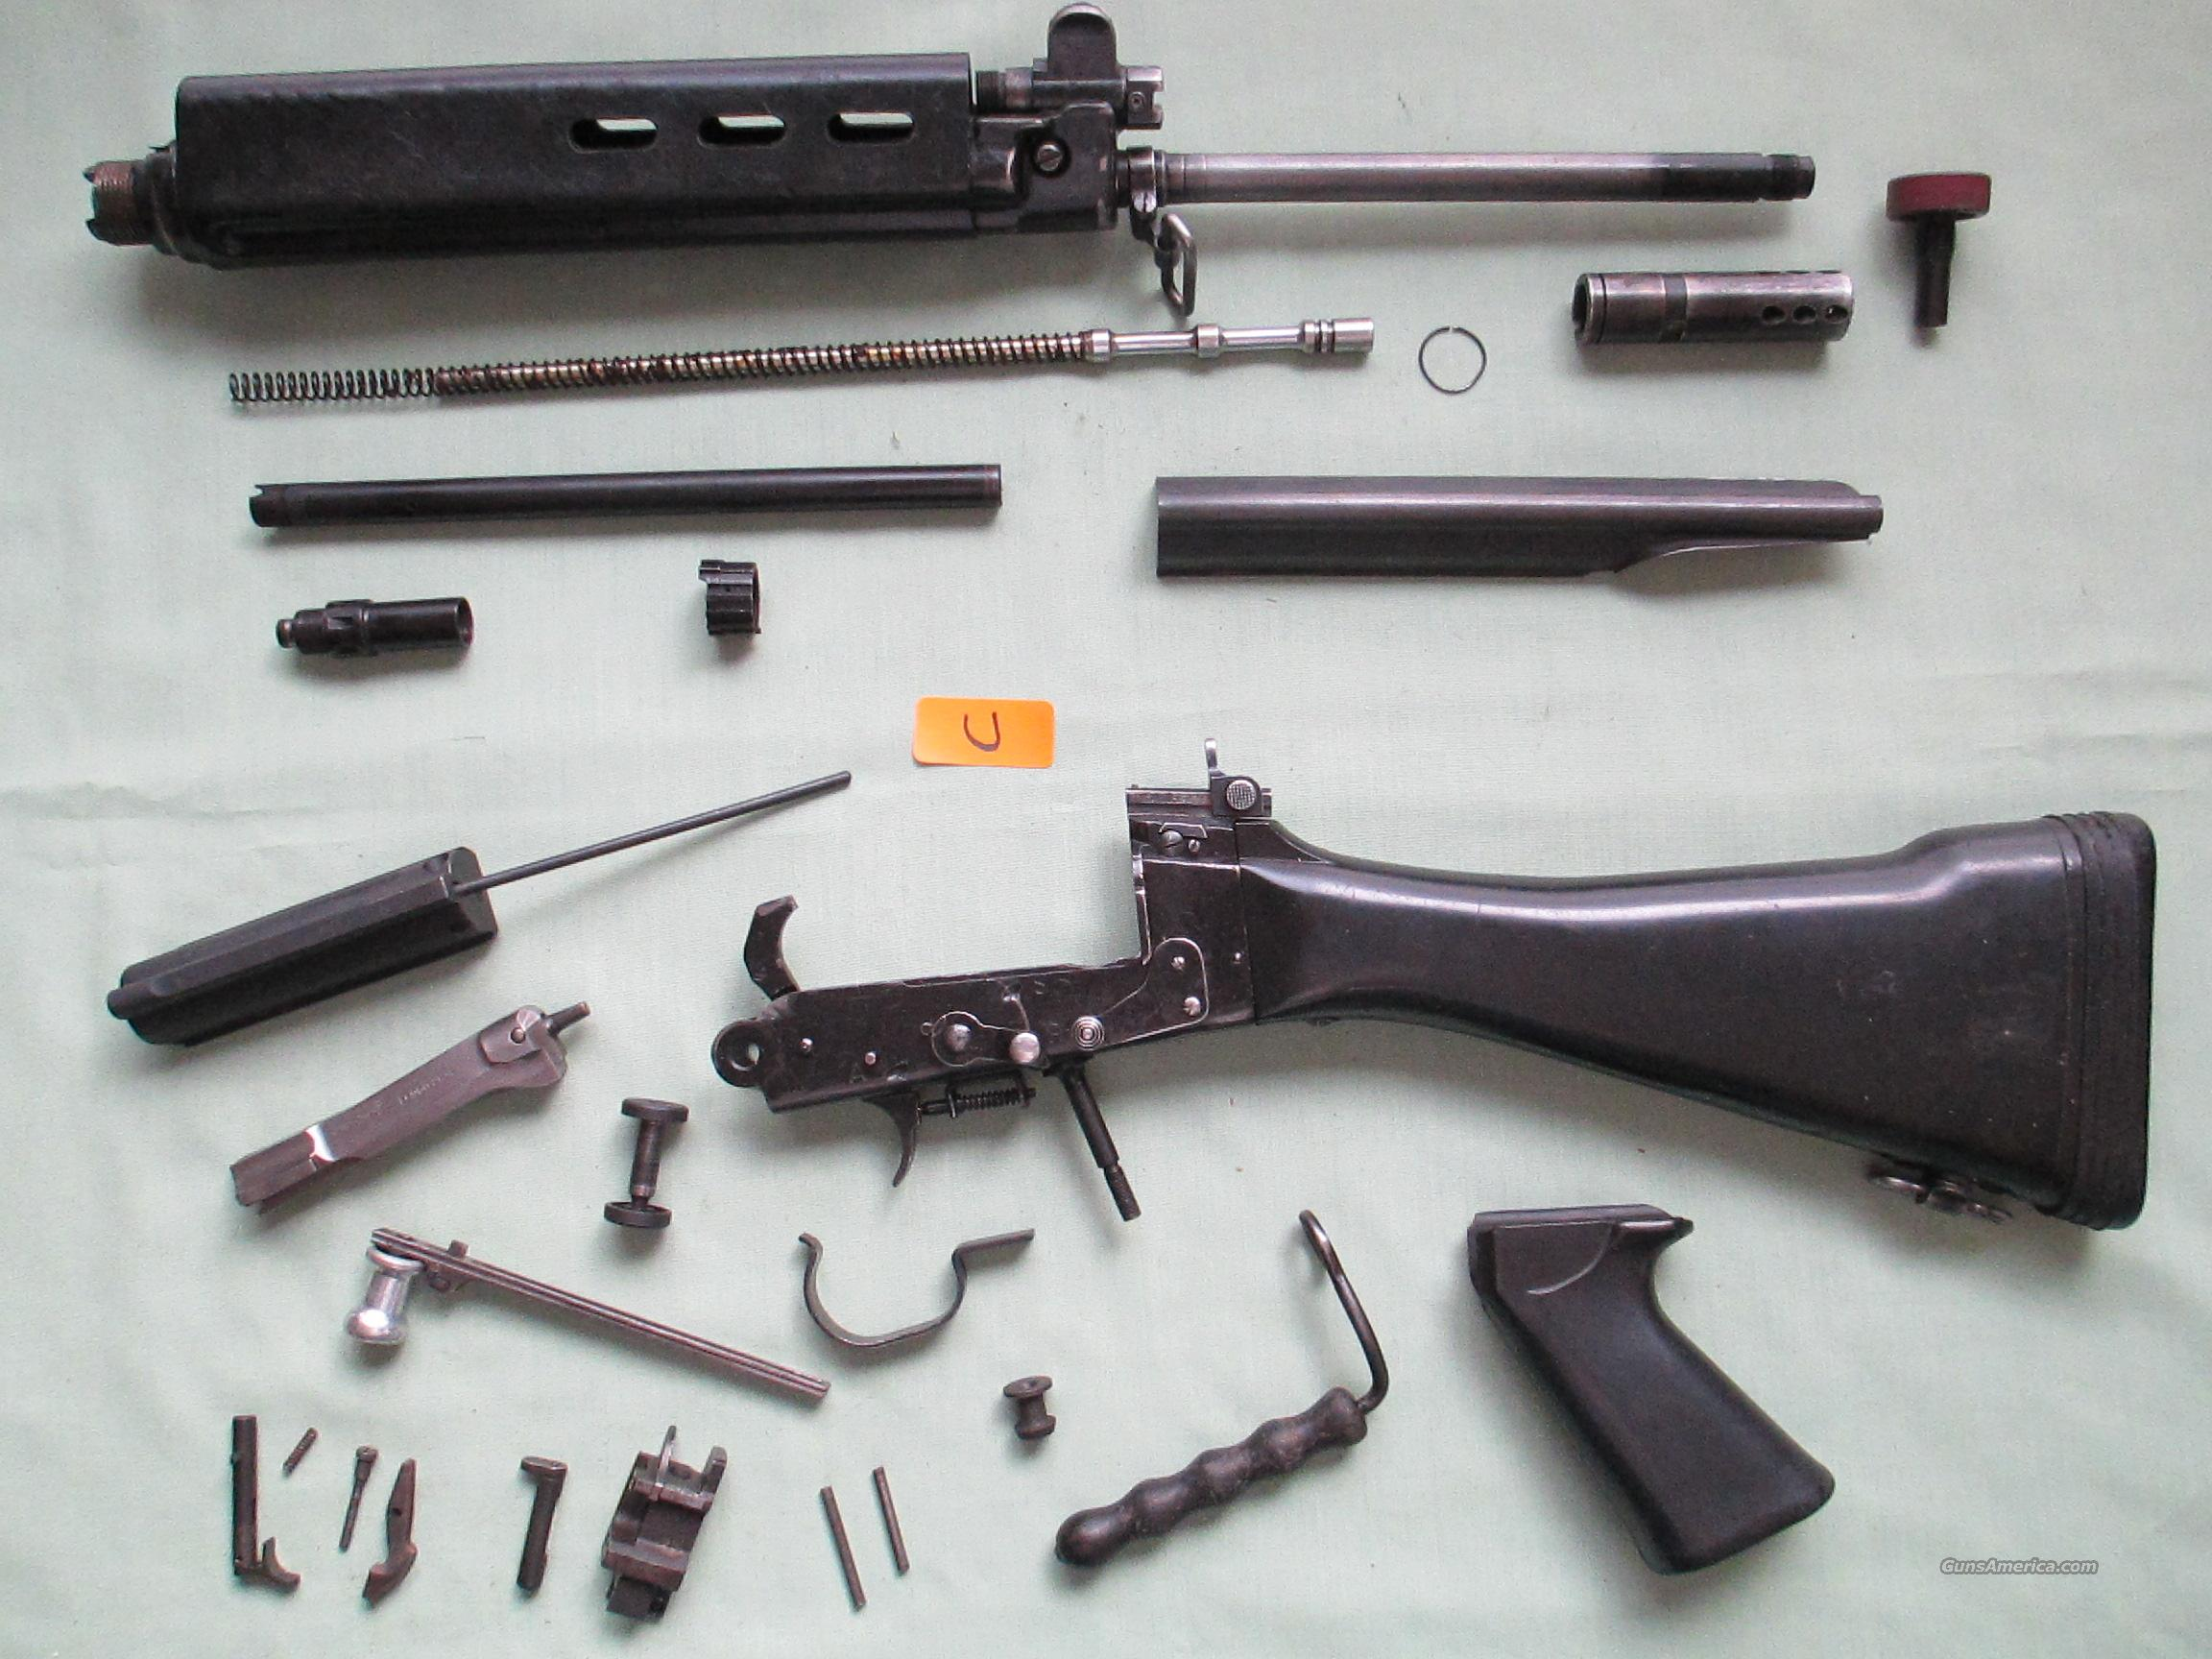 Fn fal 308 pictures of wedding